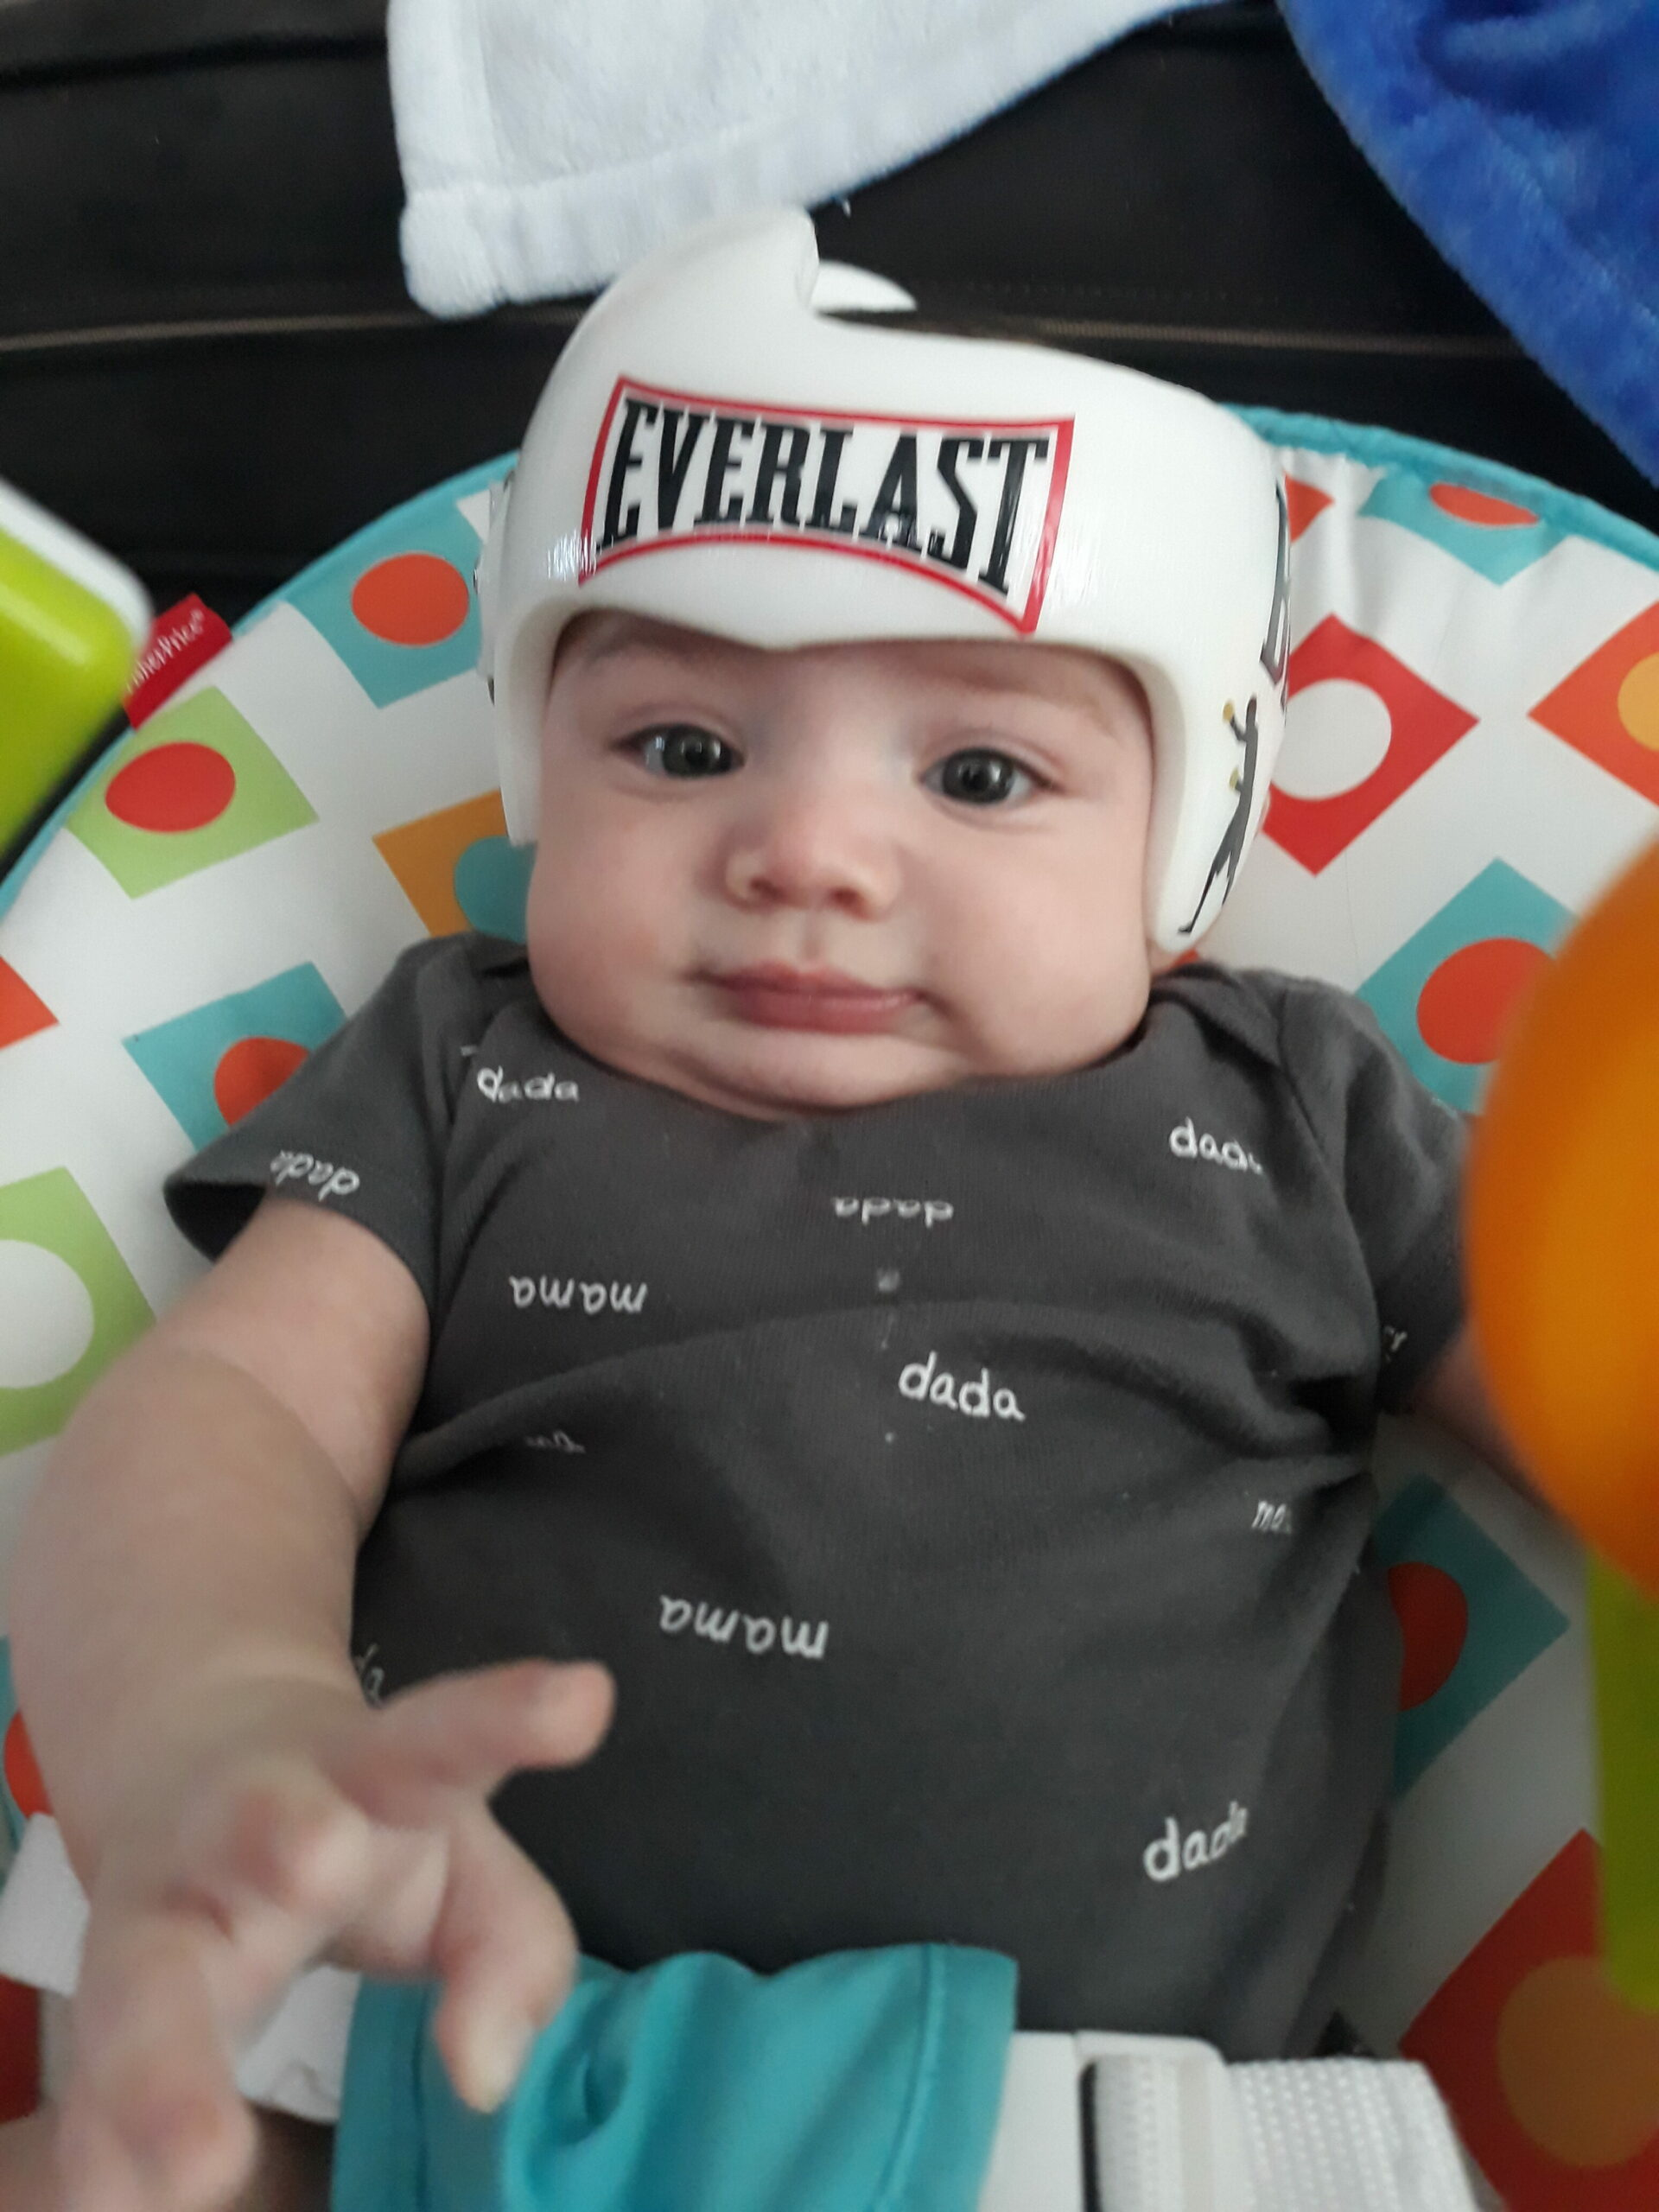 Everlast boxing cranial band